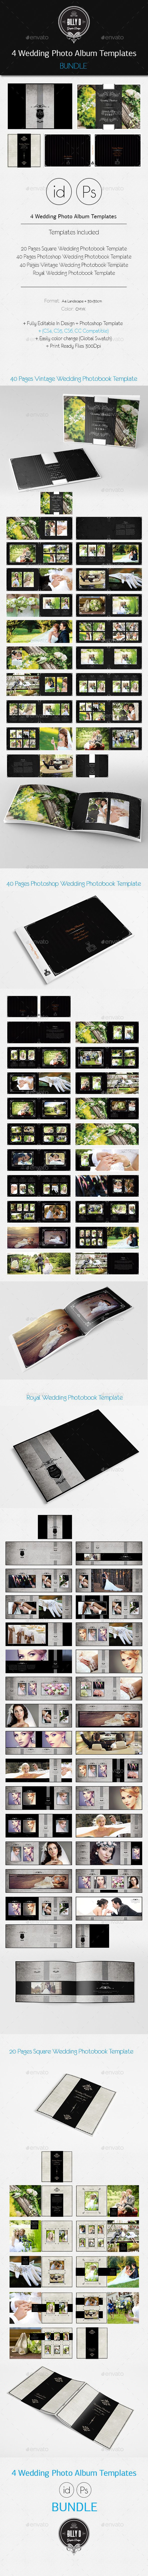 4 Wedding Photo Album Templates Bundle